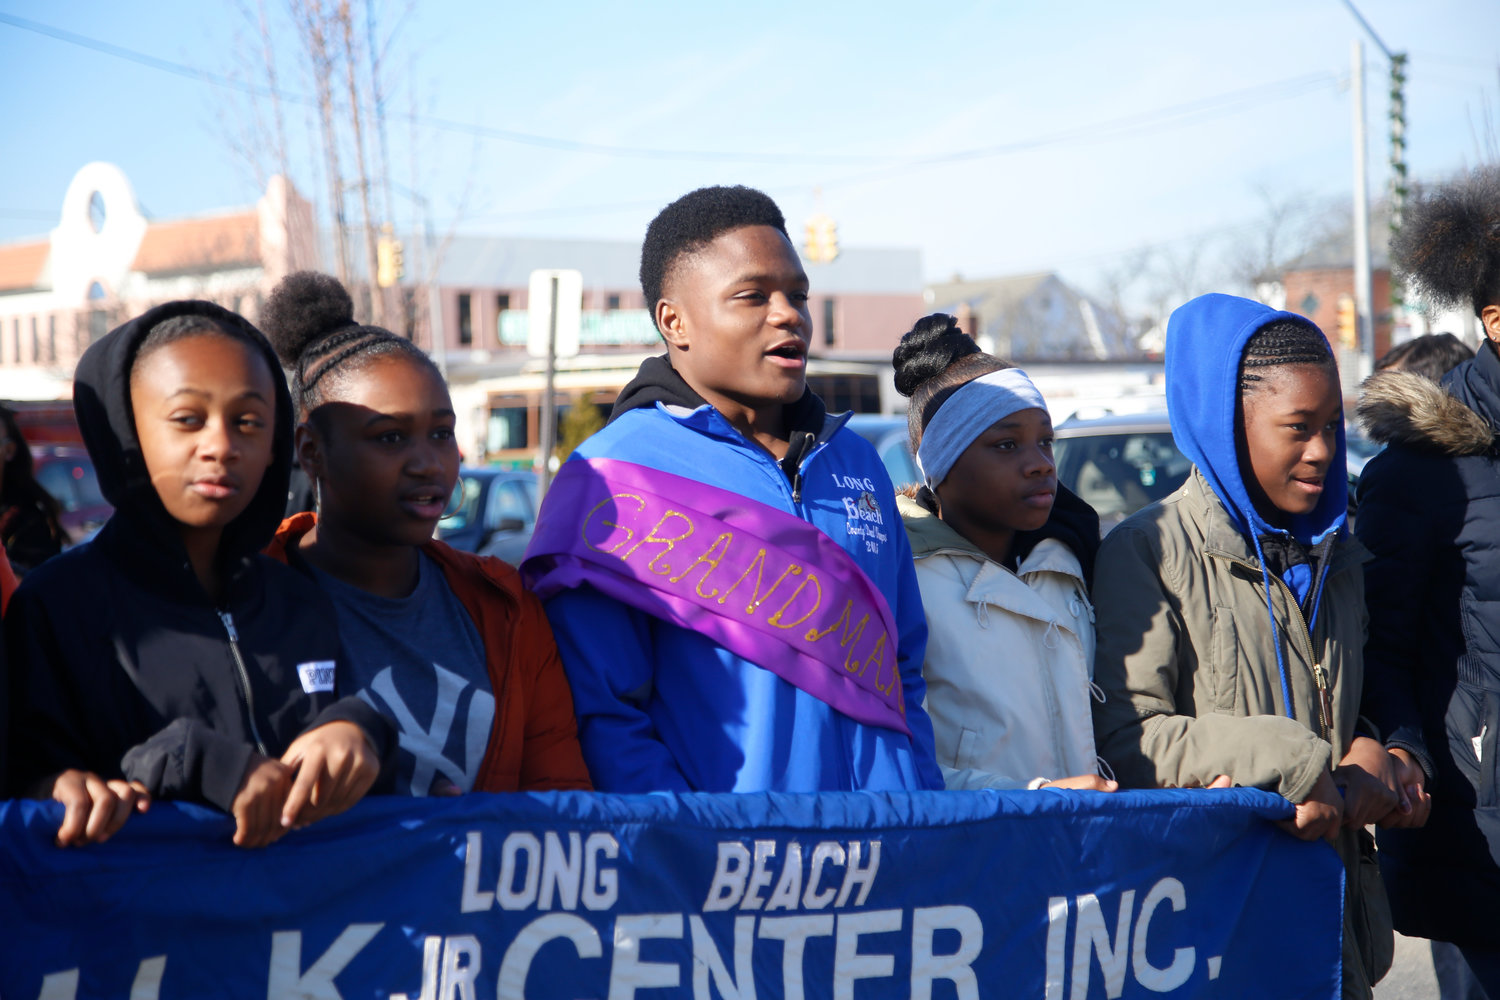 Long Beach High School alumni and 2016 national wrestling champion Jacori Teemer served as the 2017 grand marshal in the annual Dr. Martin Luther King Jr. Birthday Commemorative March and Celebration on Jan. 19, 2017.